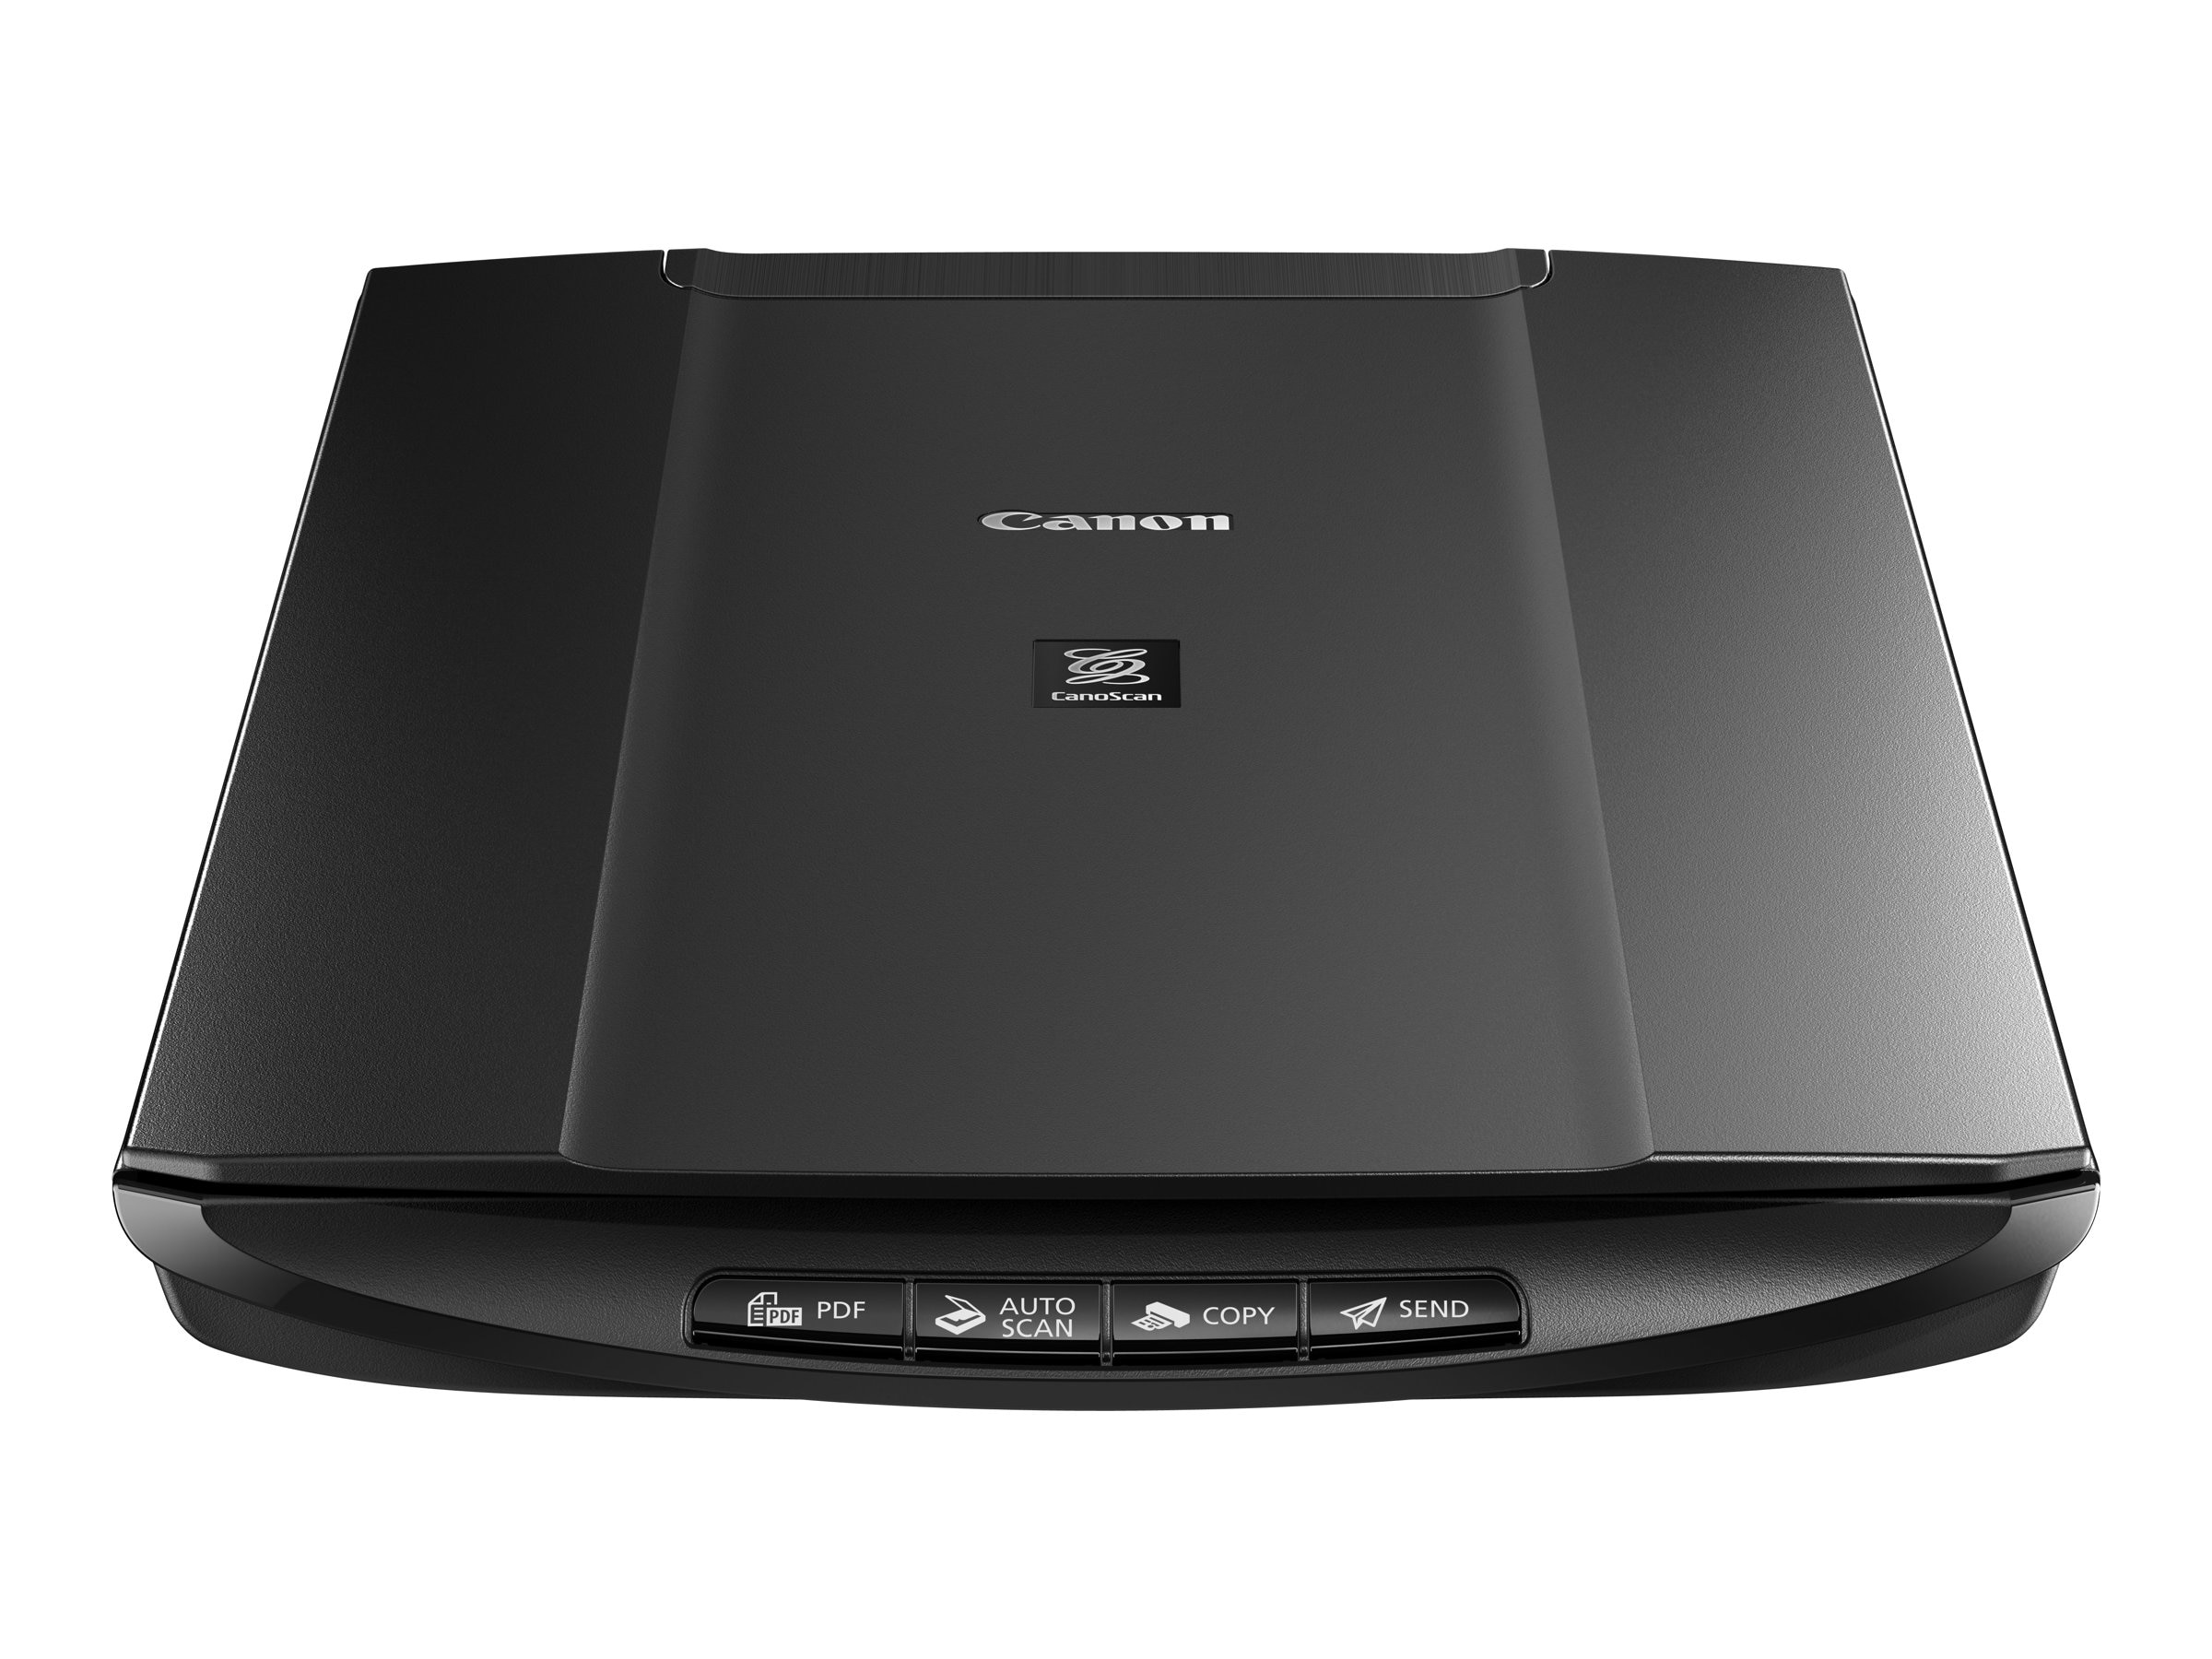 Canon CanoScan LiDE120 Color Image Flatbed Scanner, 9622B002AA